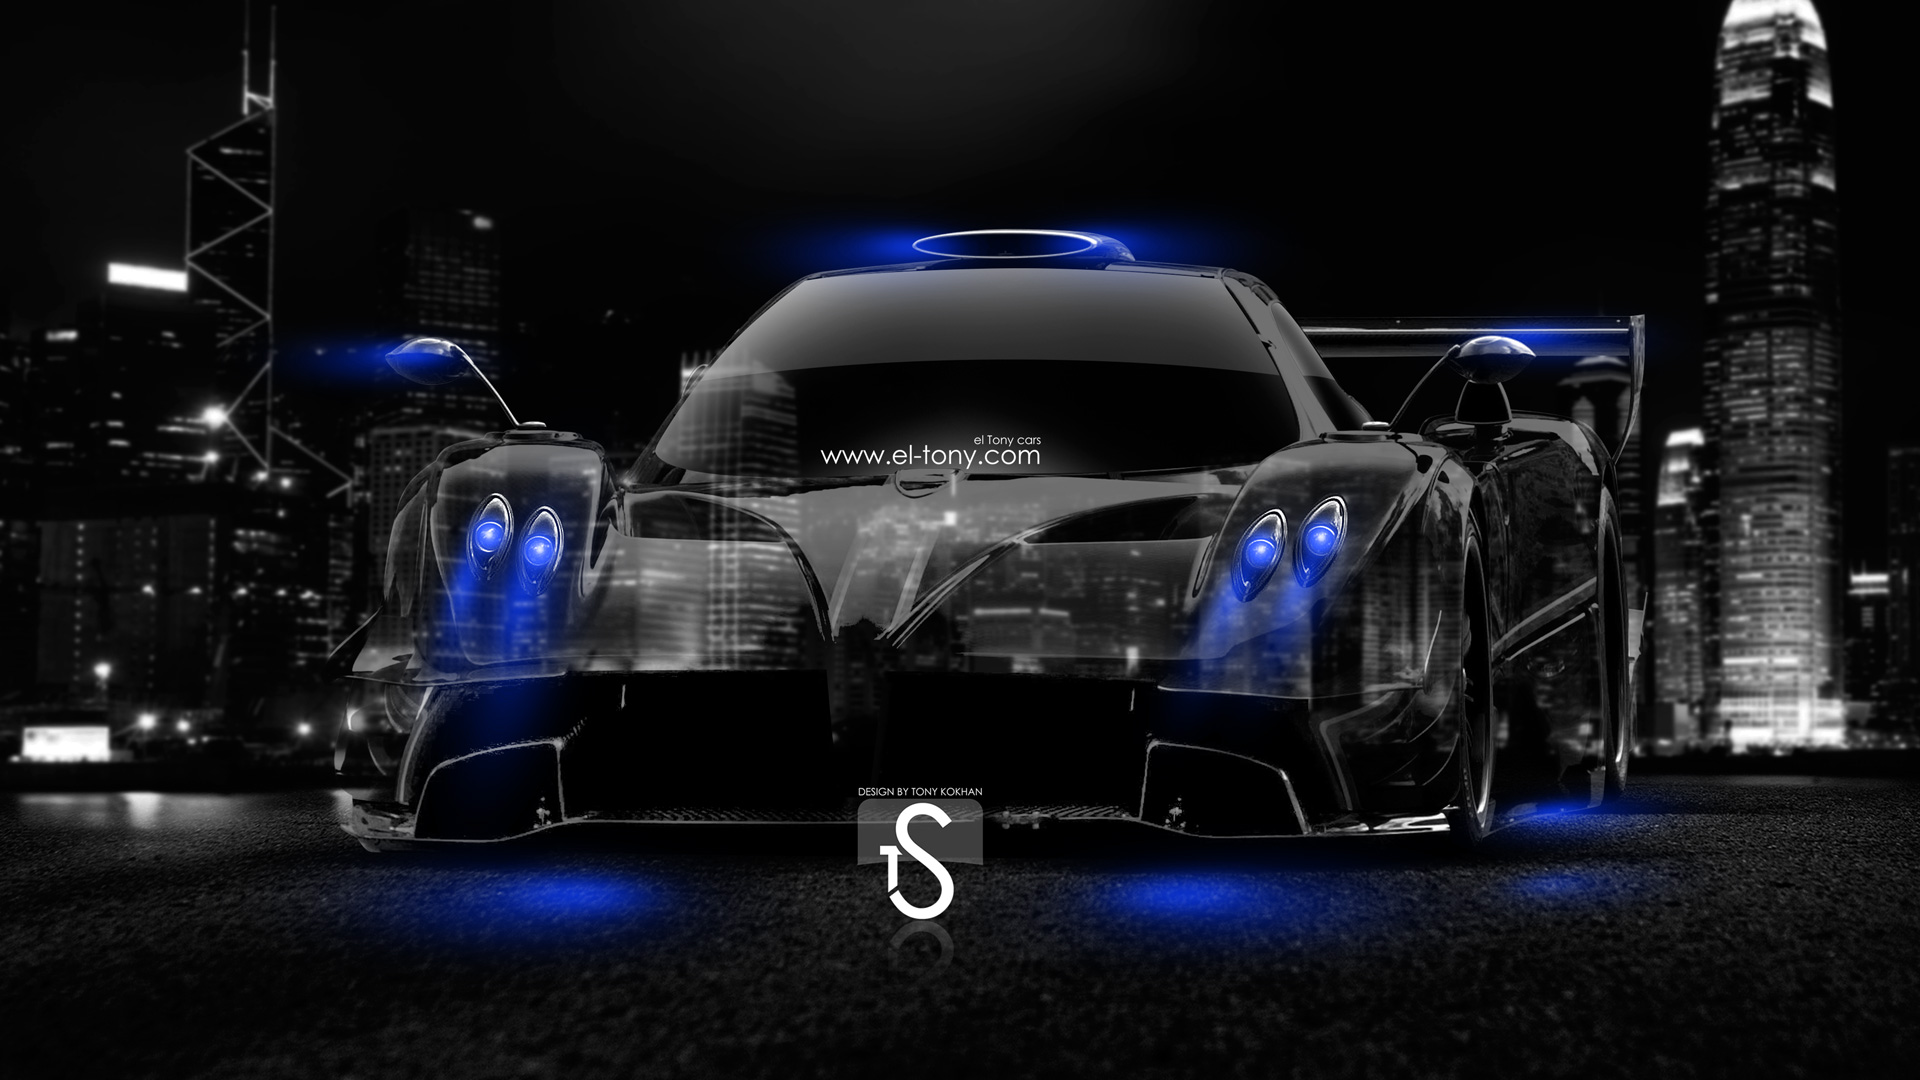 Genial Pagani Zonda Revolucion Crystal City Car 2014 Blue  ...